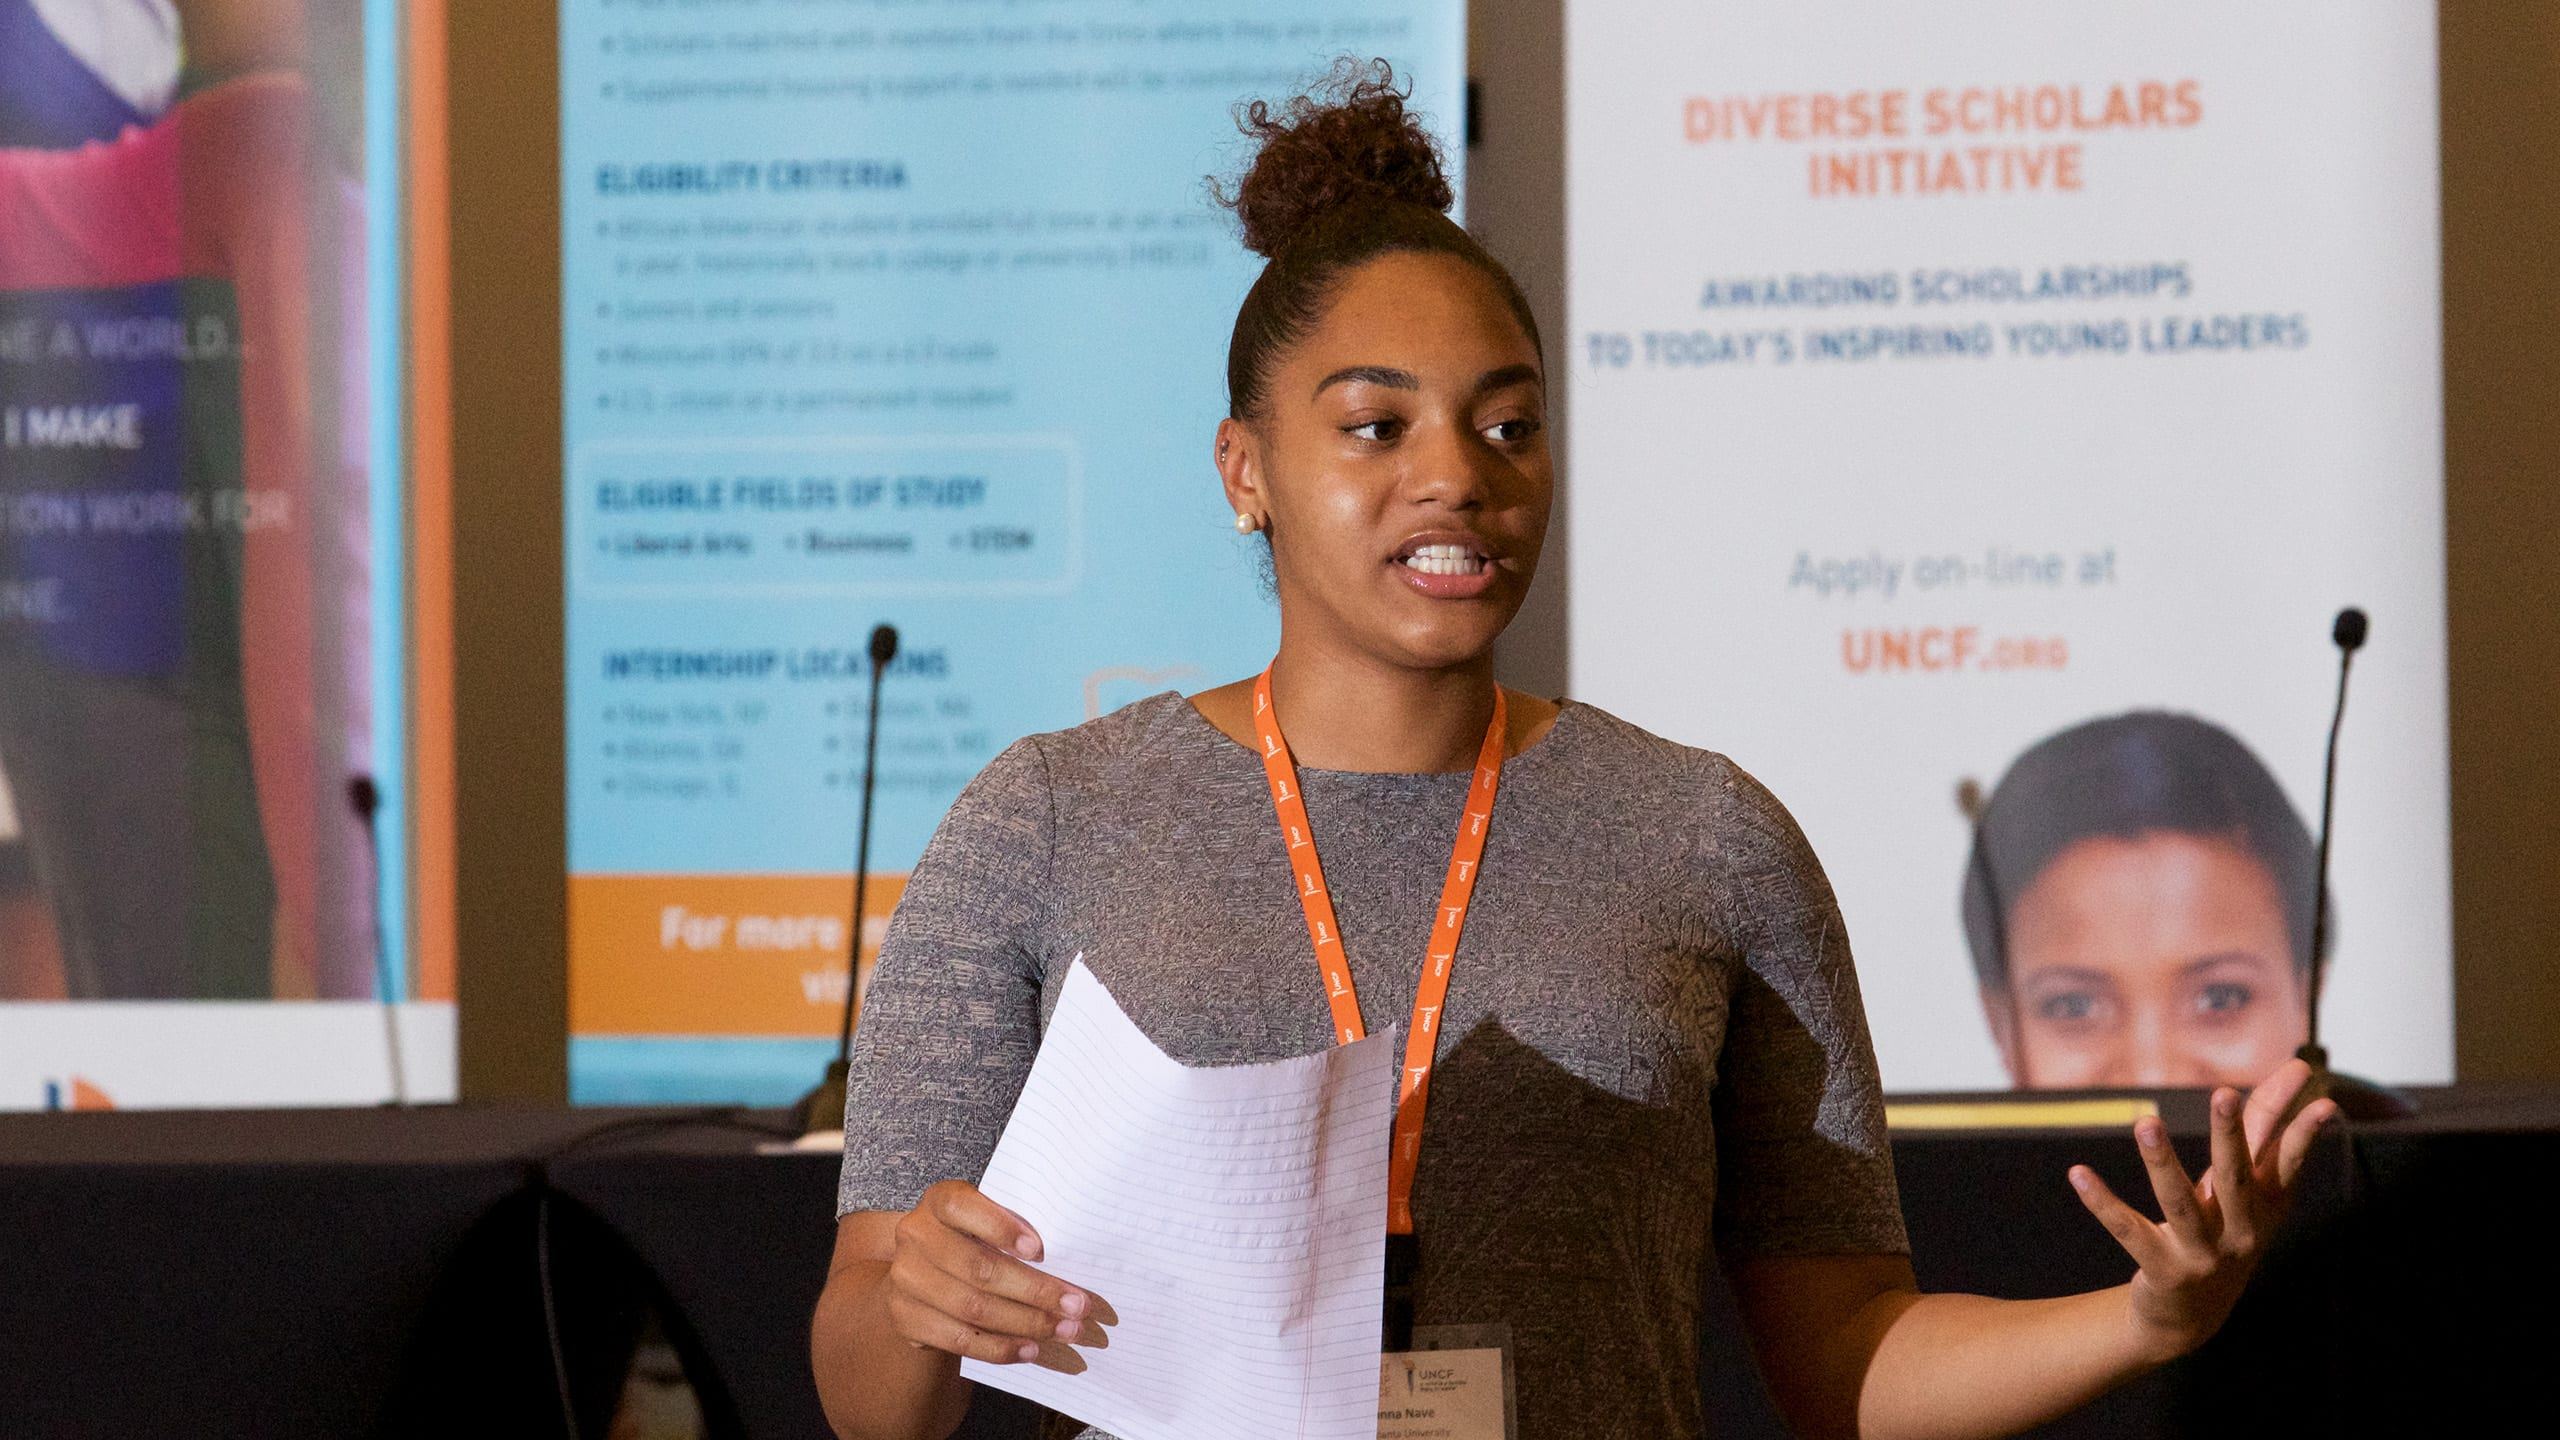 Walton-UNCF K-12 Education Fellowship Selection Process and Timeline